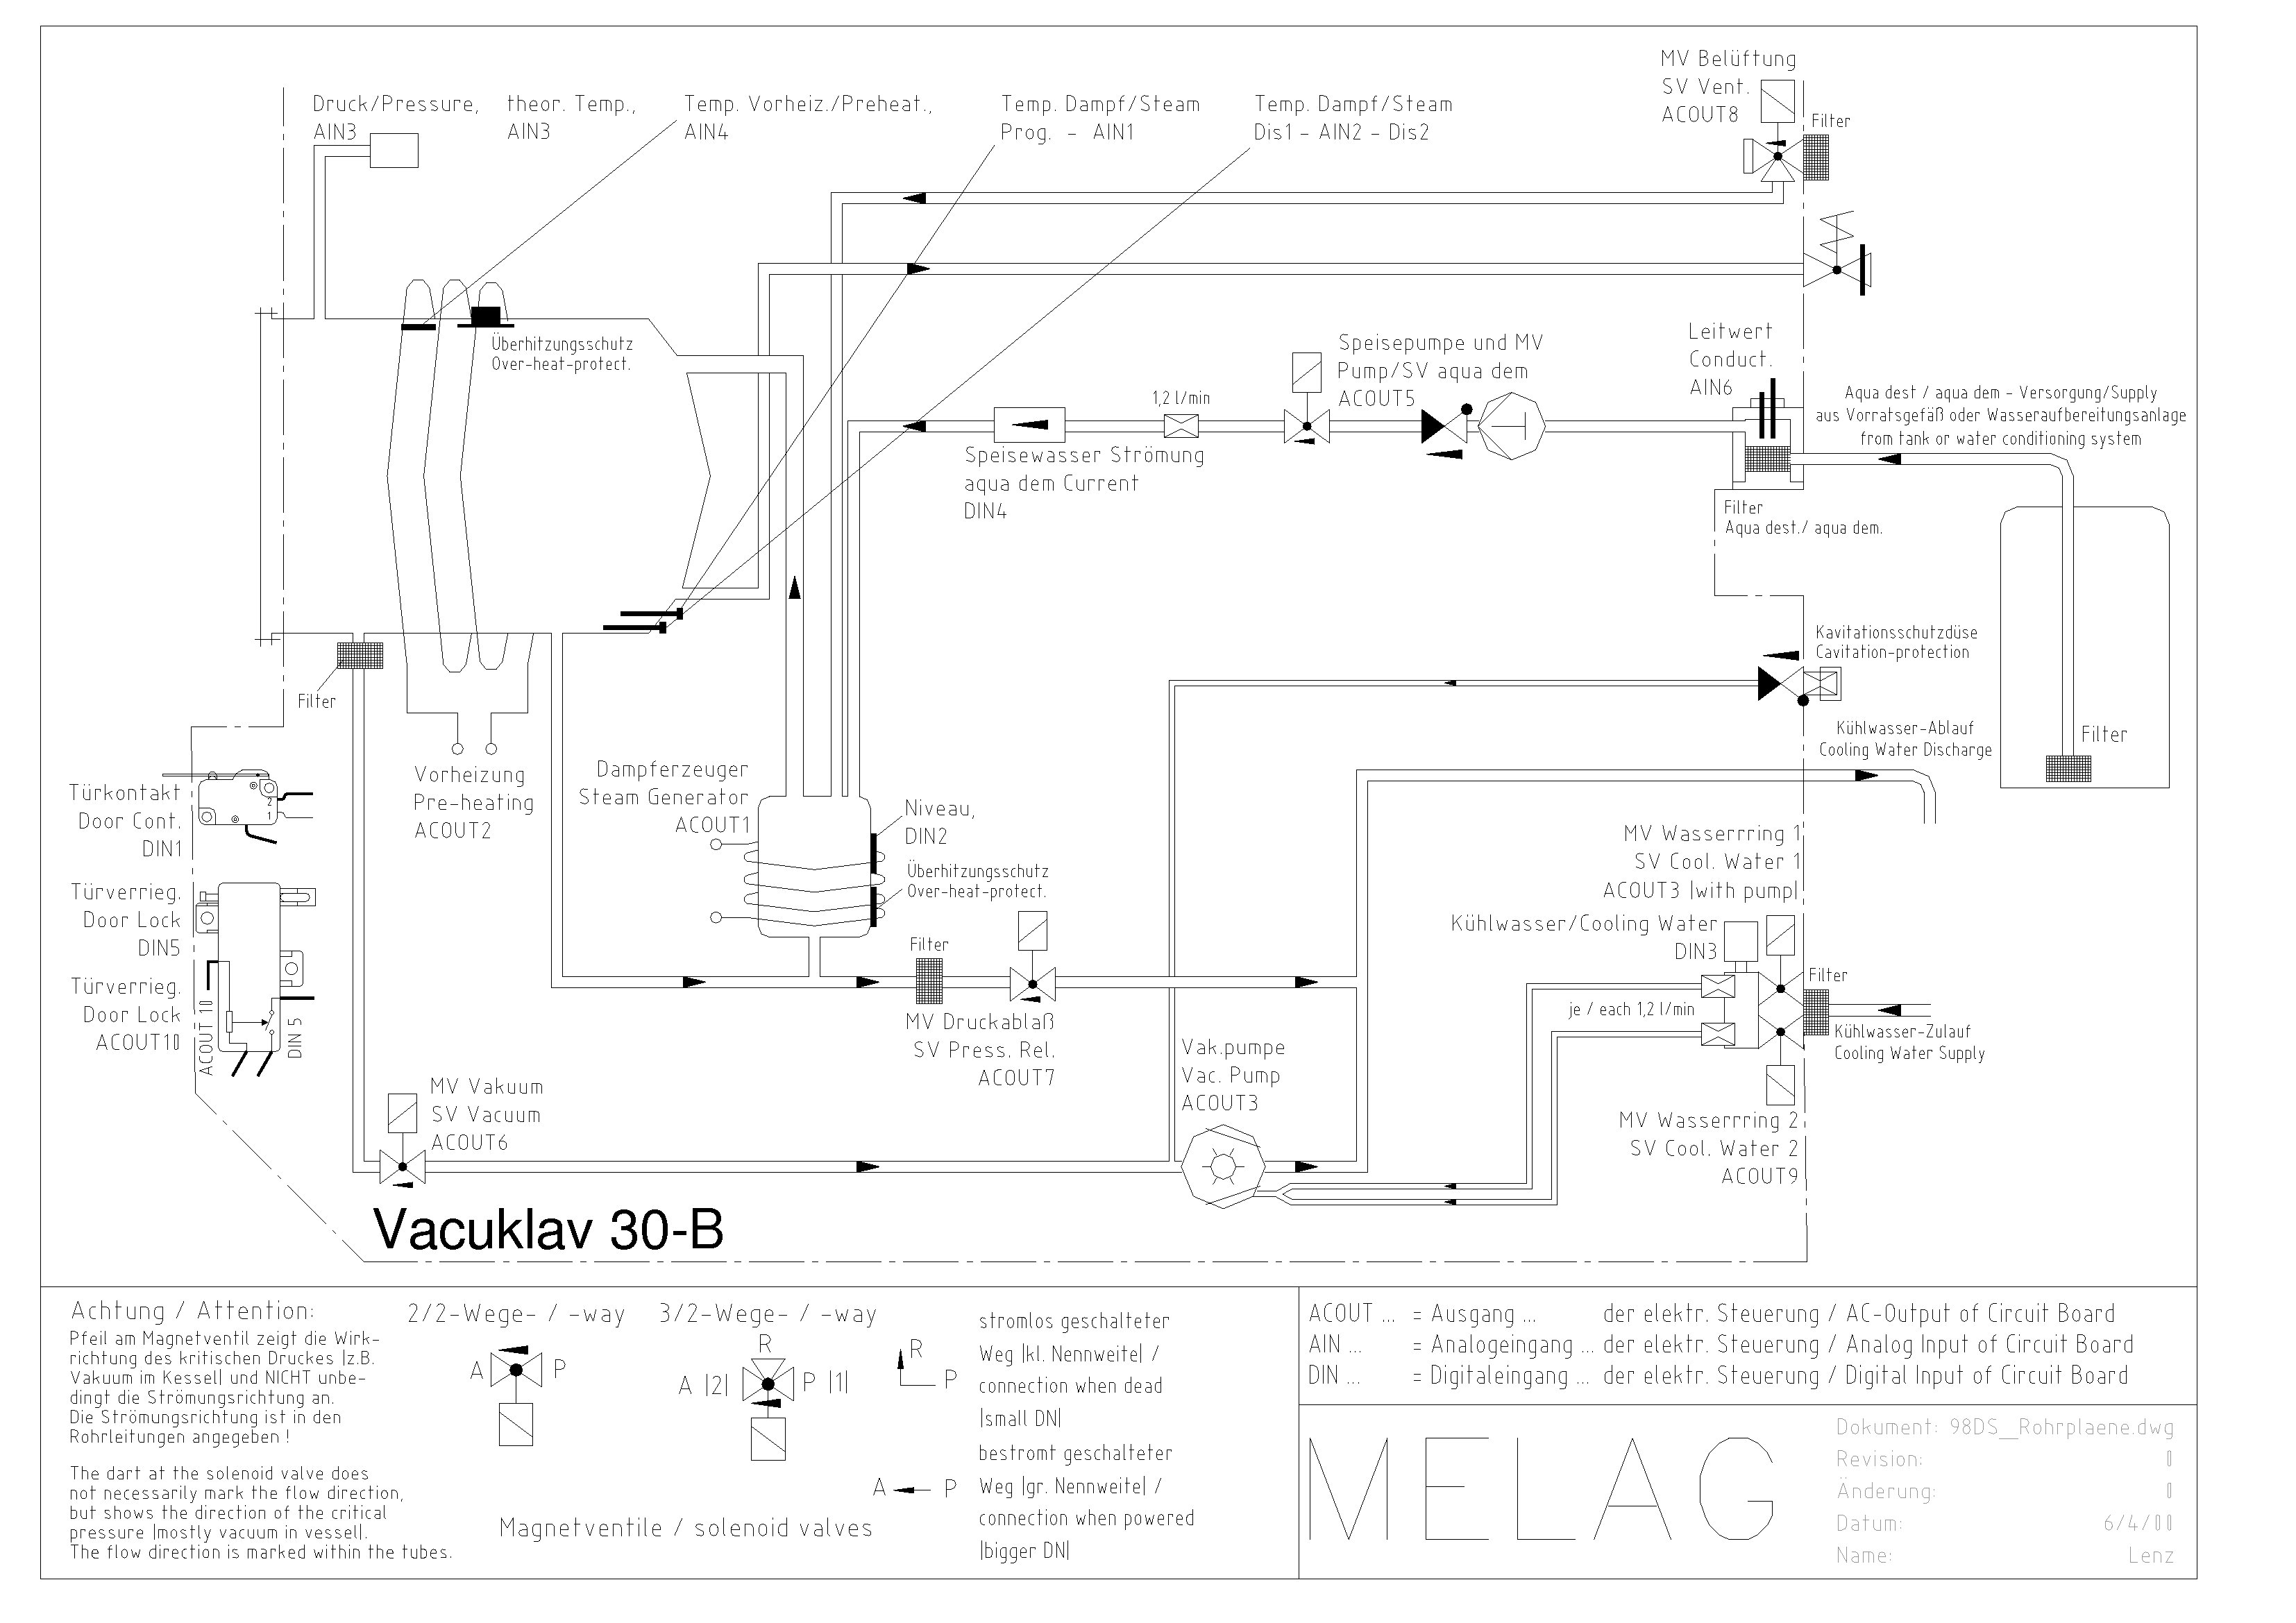 midmark m11 ultraclave wiring diagram